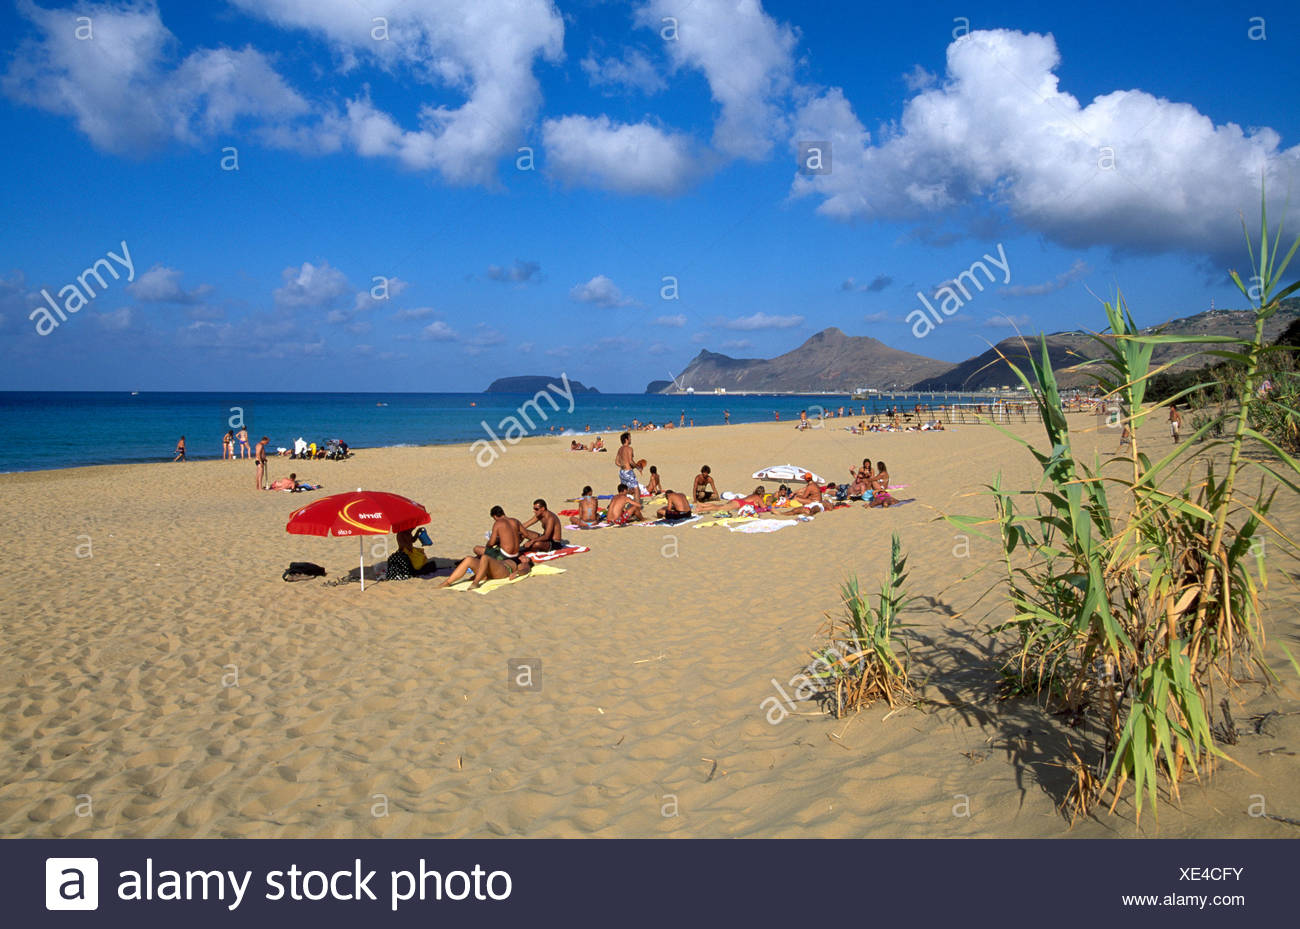 Sandy beach on Porto Santo Island, Madeira, Portugal, Europe - Stock Image